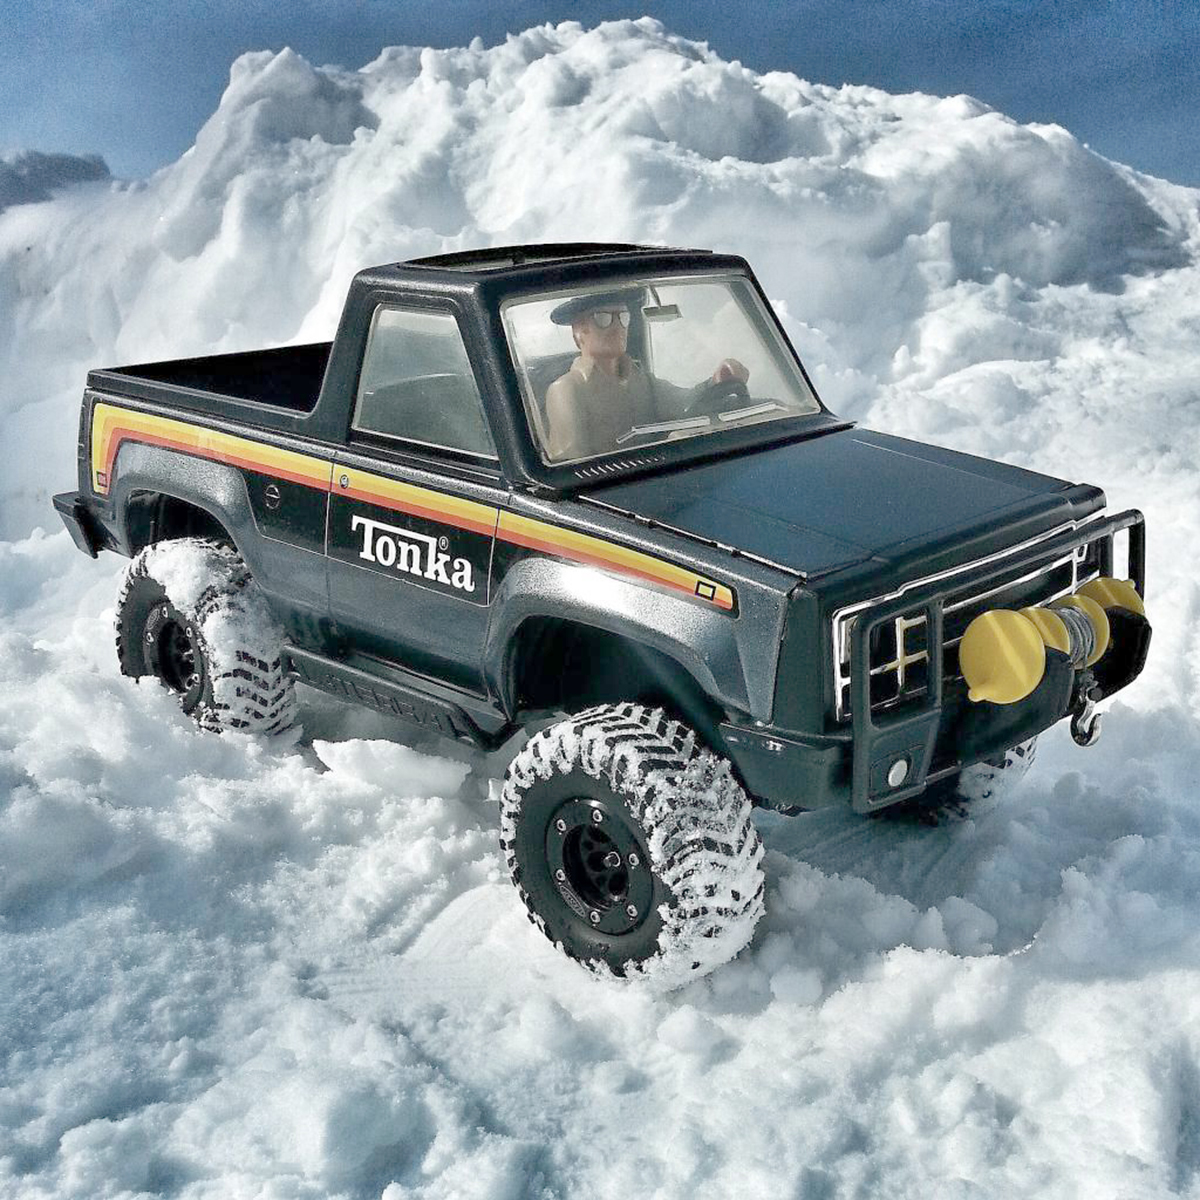 Tonka-Tough Bronco Vaterra Ascender Reader's Ride [VIDEO]